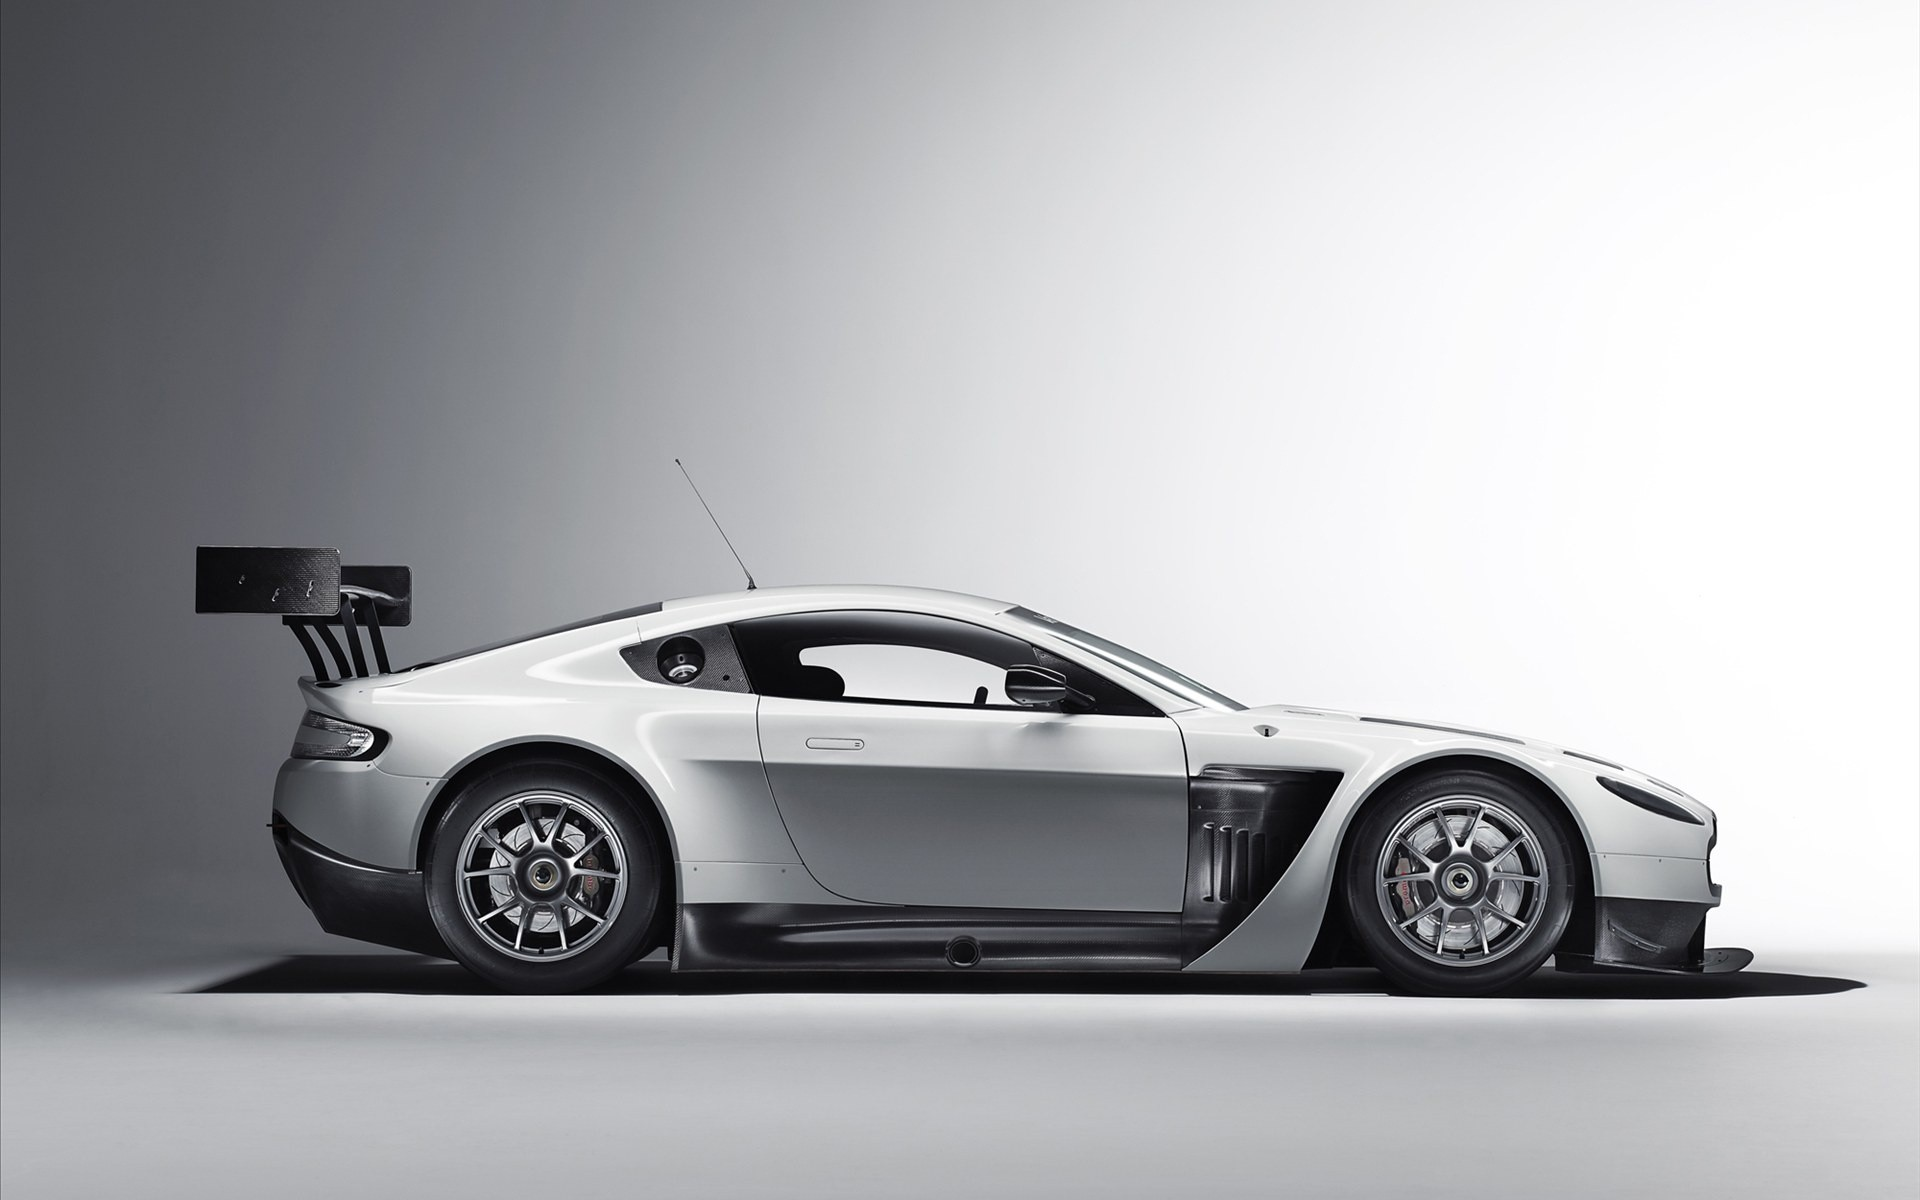 Daily Wallpaper Aston Martin Vantage Gt3 I Like To Waste My Time